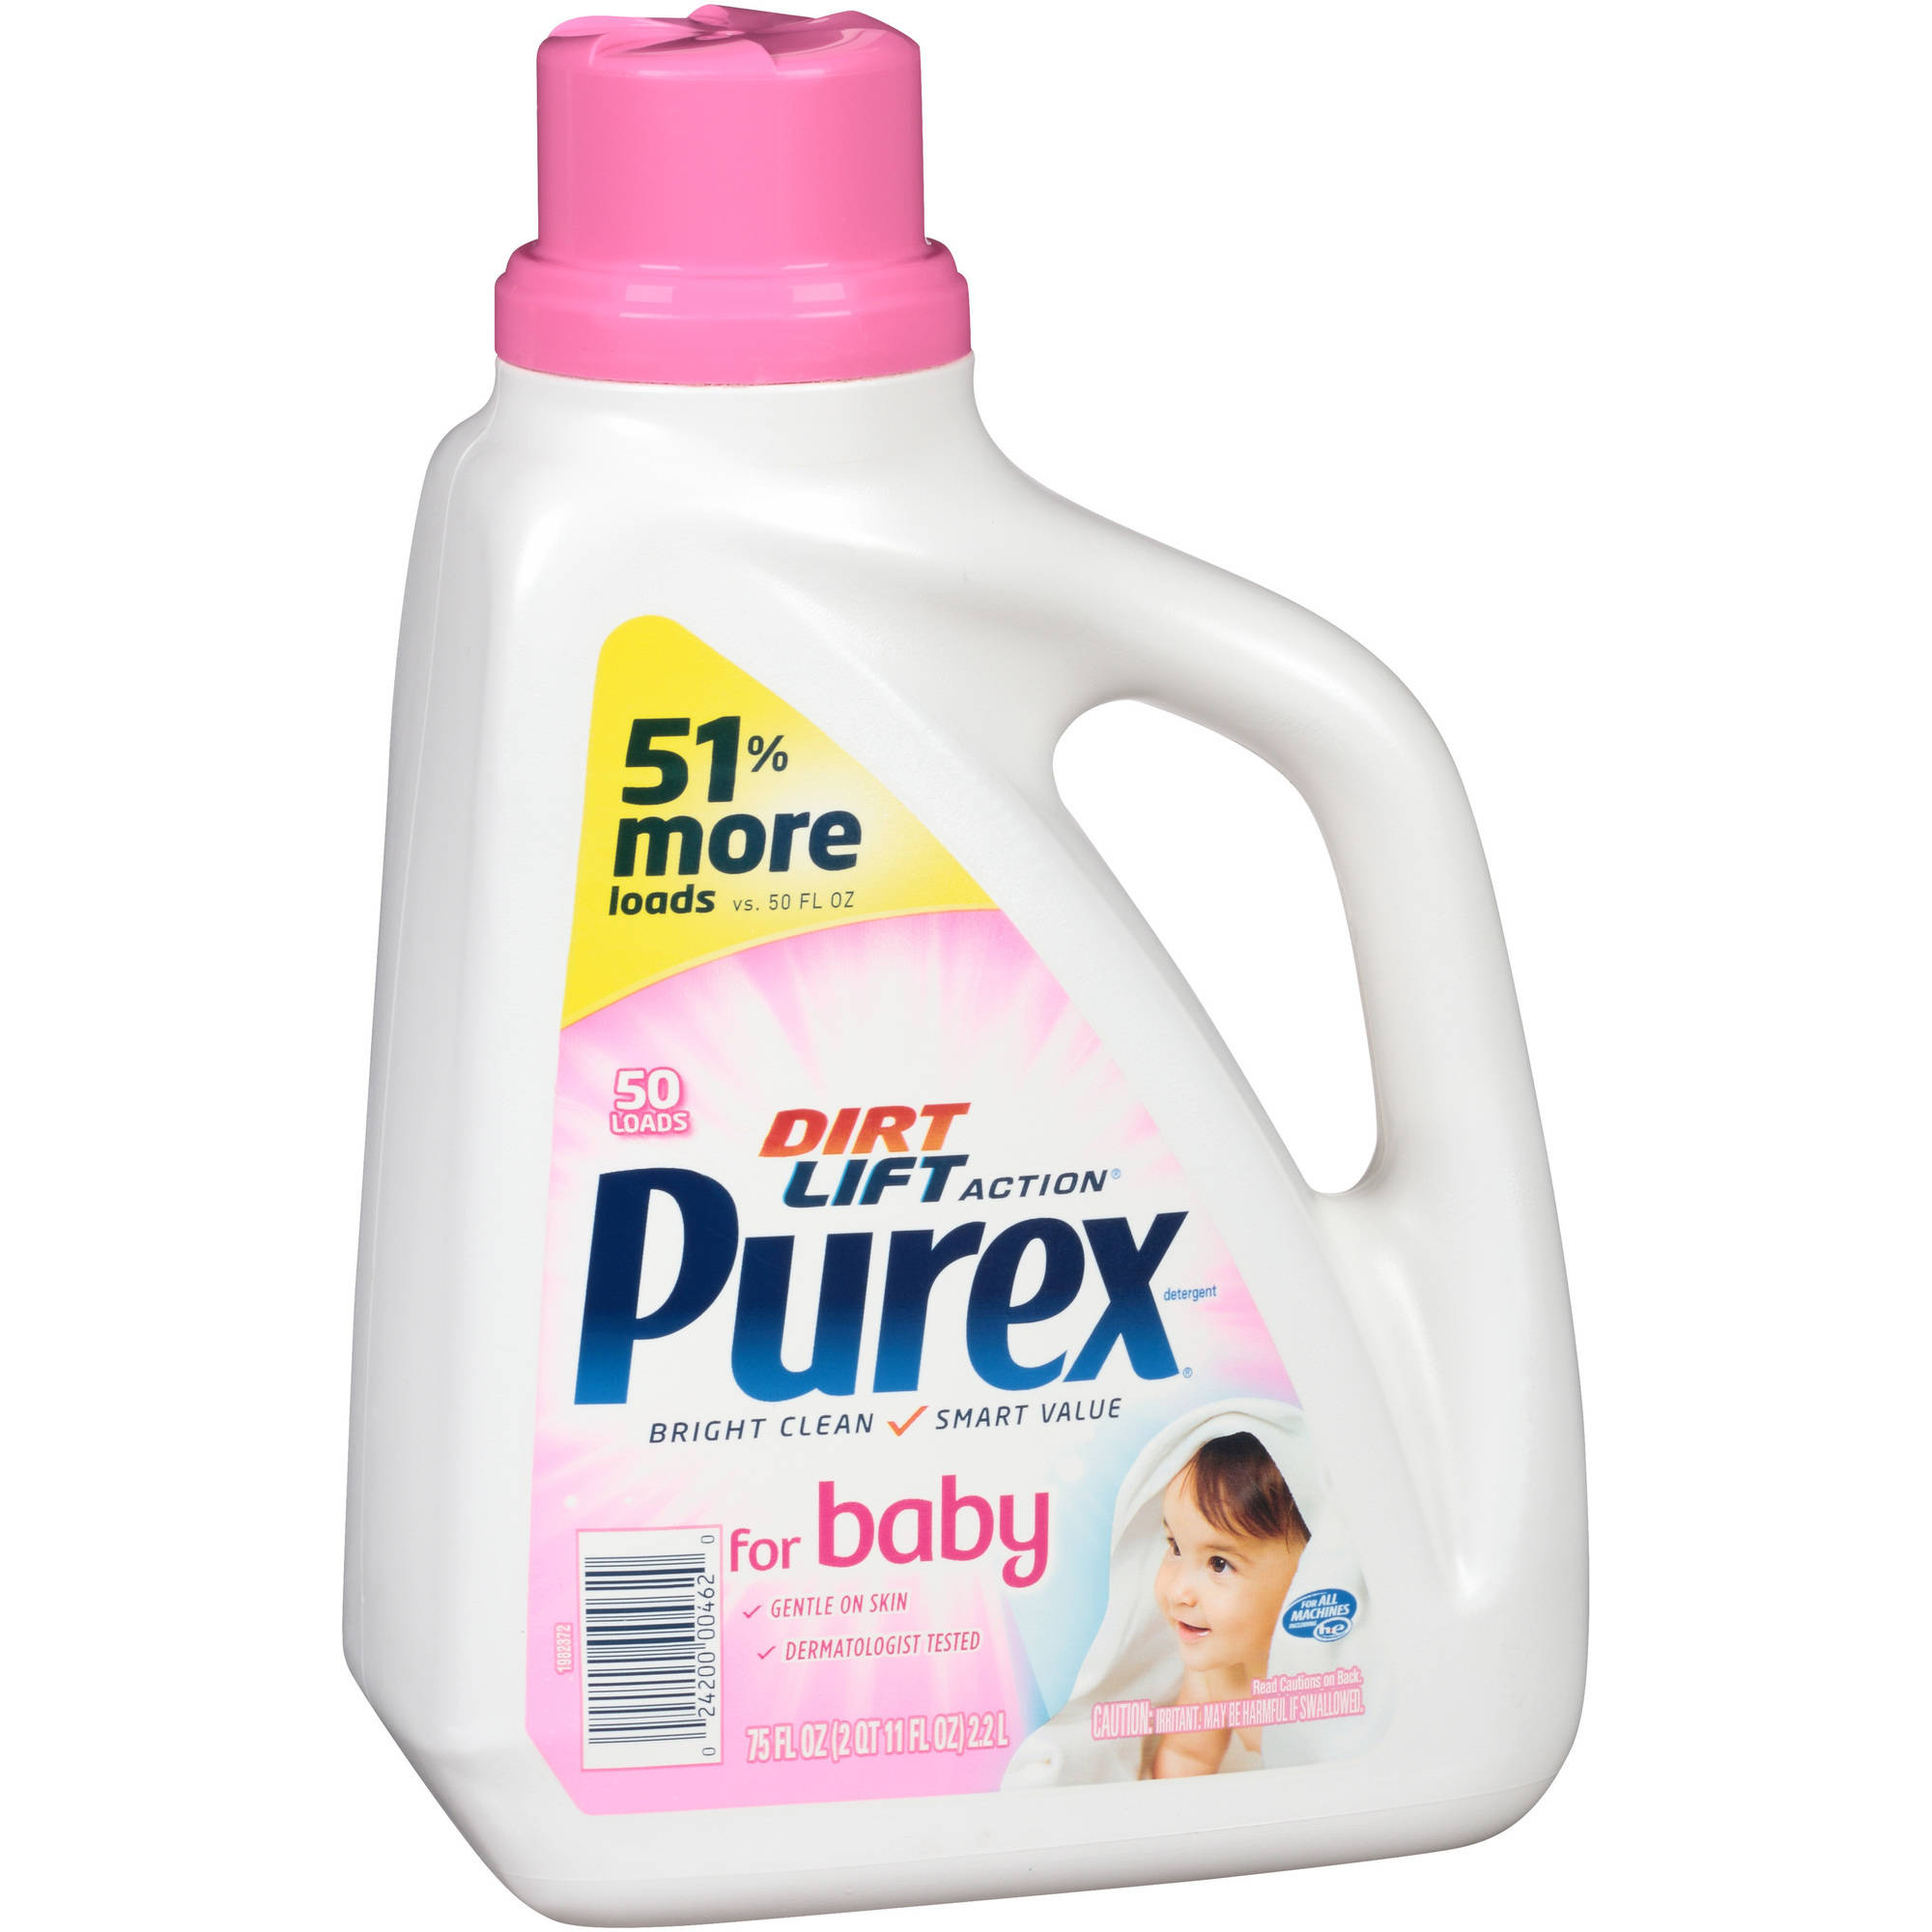 Purex Dirt Lift Action Liquid Laundry Detergent for Baby, 50 loads, 75 fl oz